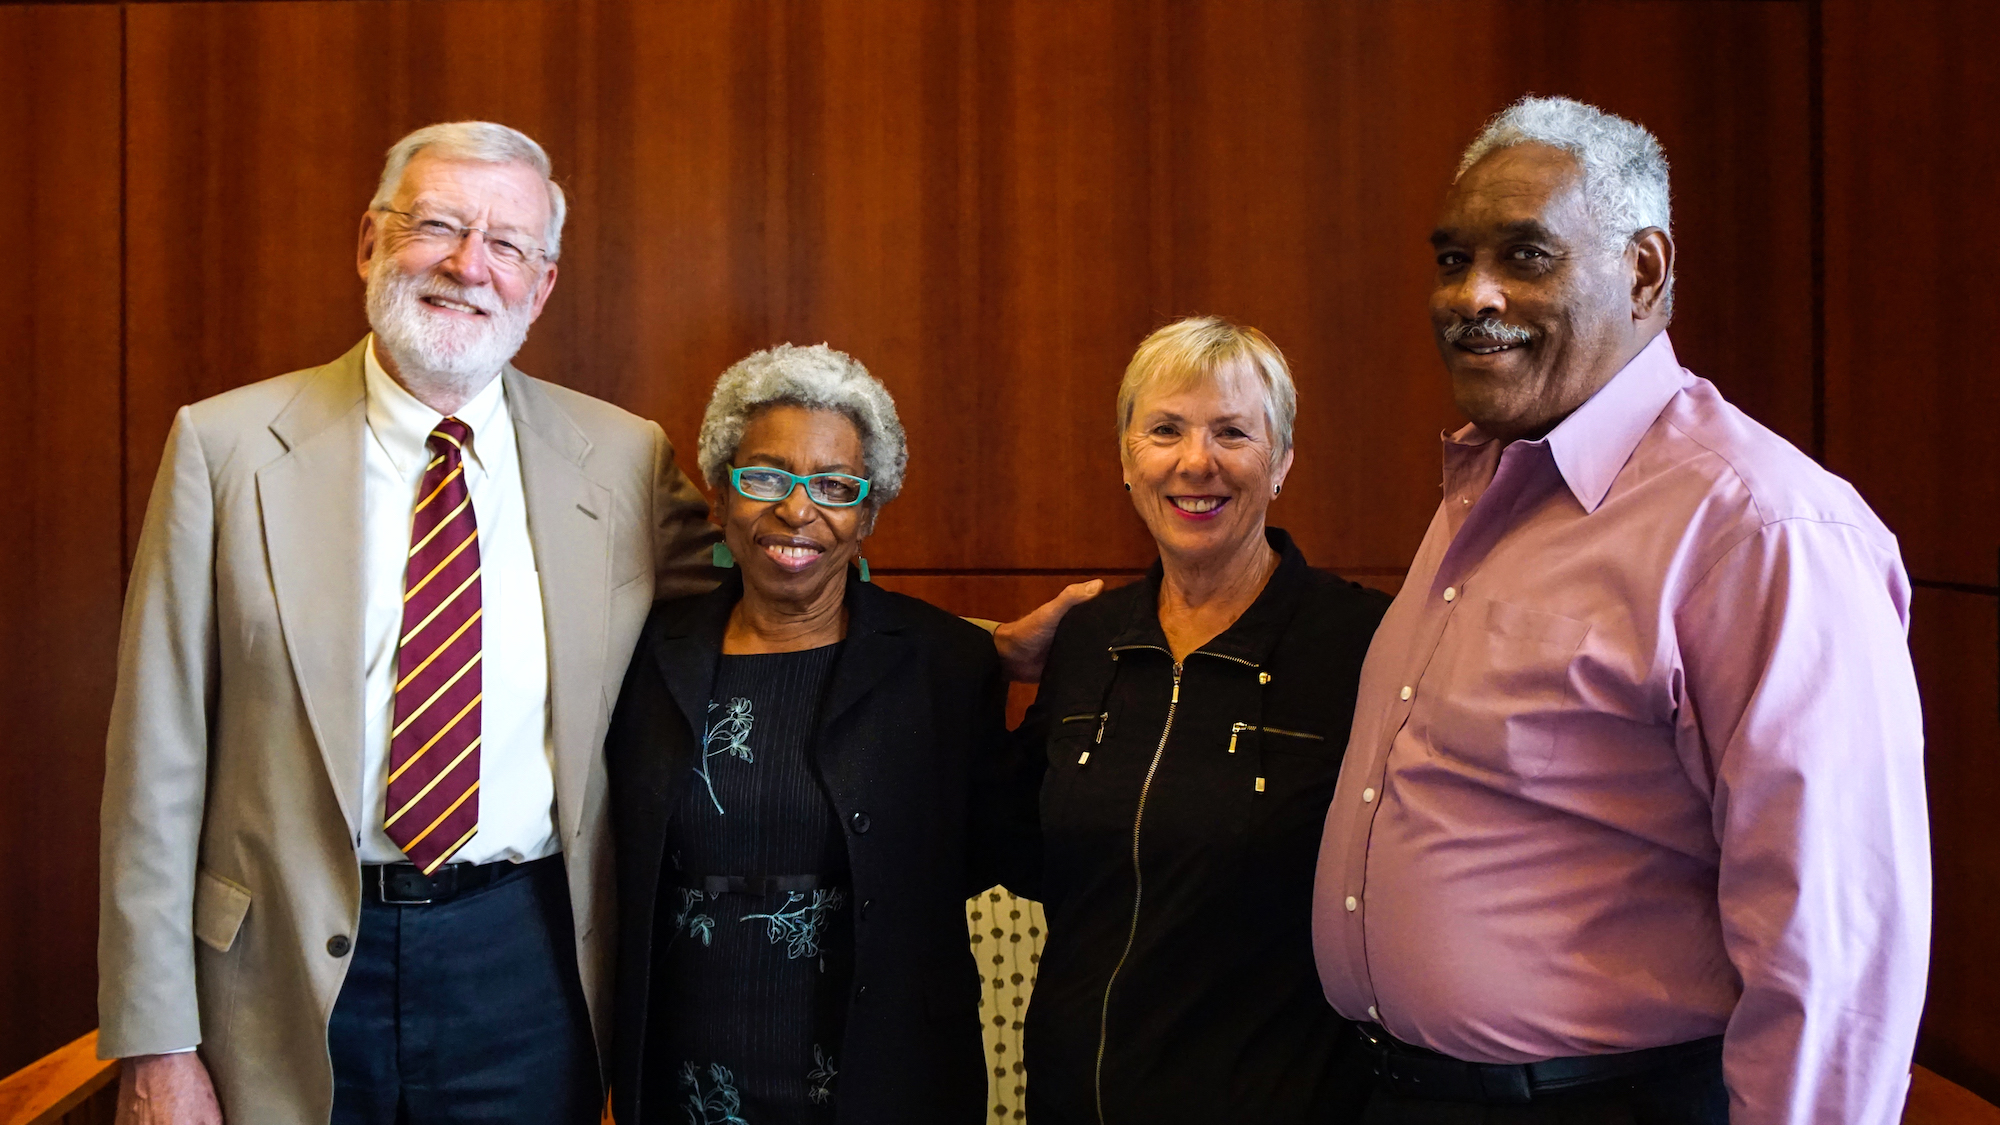 Wayne Wiegand, Geraldine Edwards Hollis, Shirley Wiegand, and Jack Hollis 